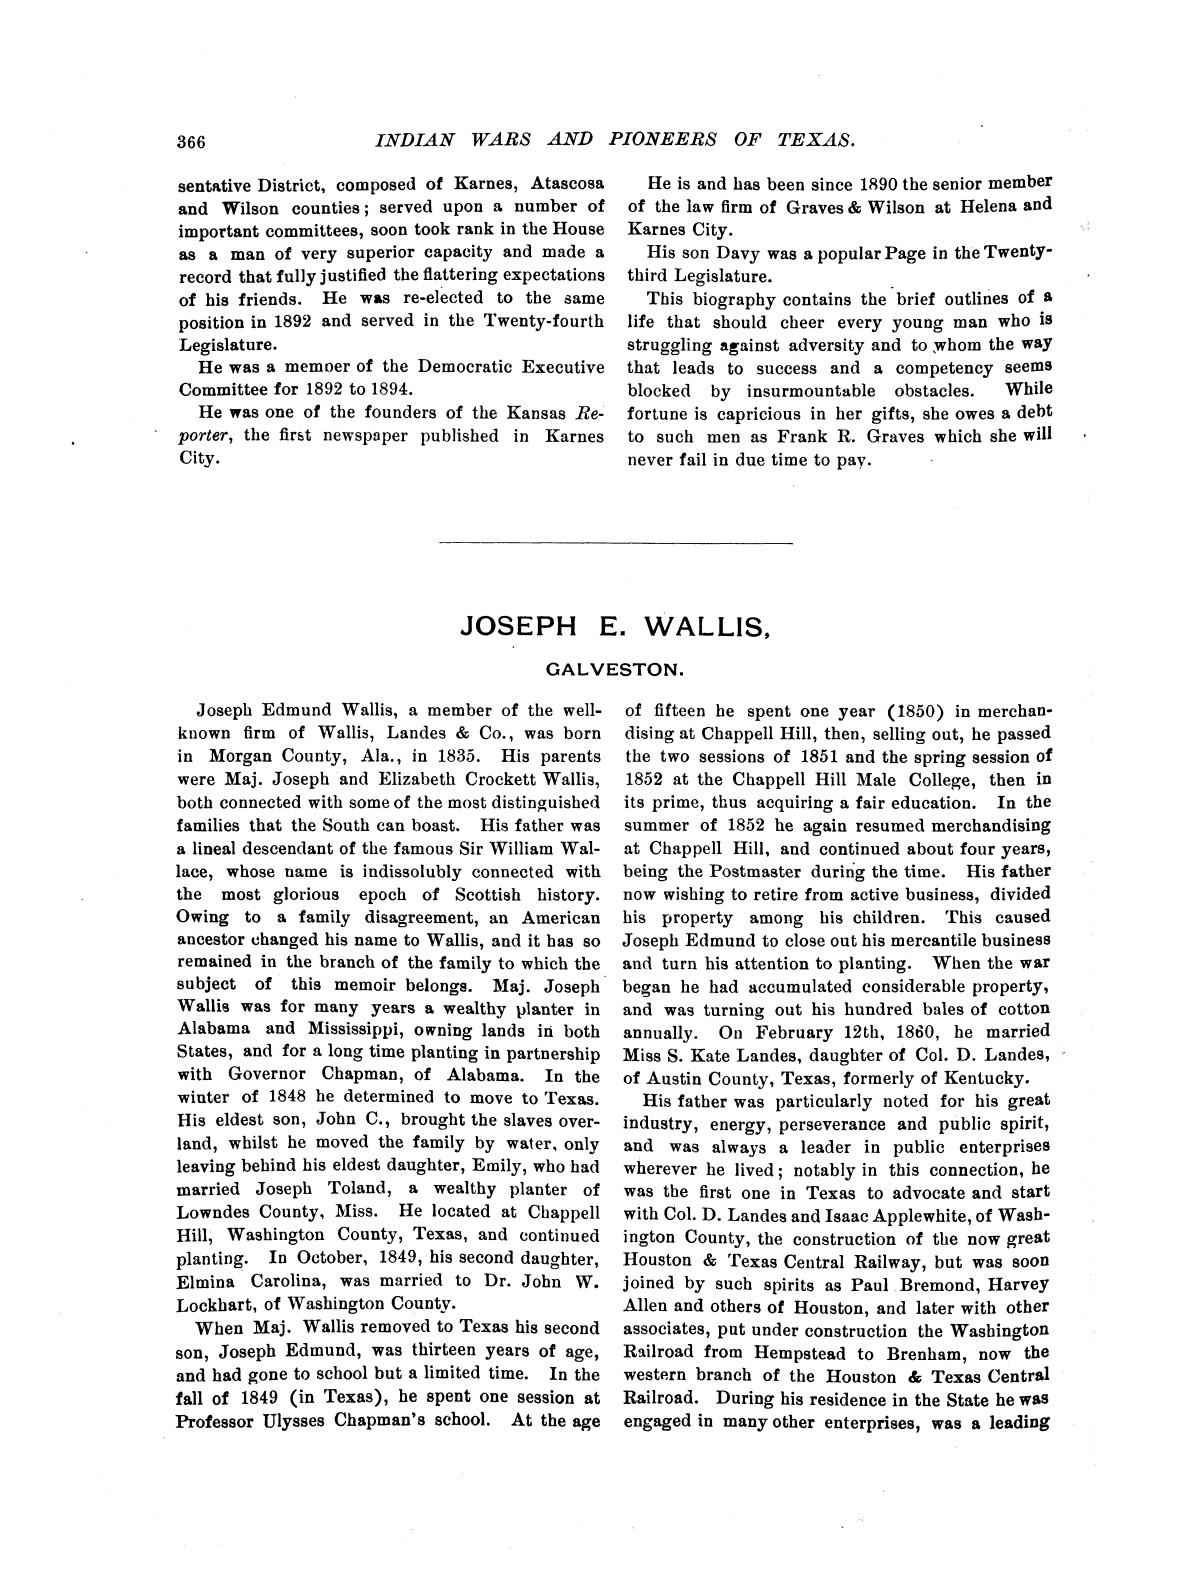 Indian wars and pioneers of Texas / by John Henry Brown.                                                                                                      [Sequence #]: 441 of 894